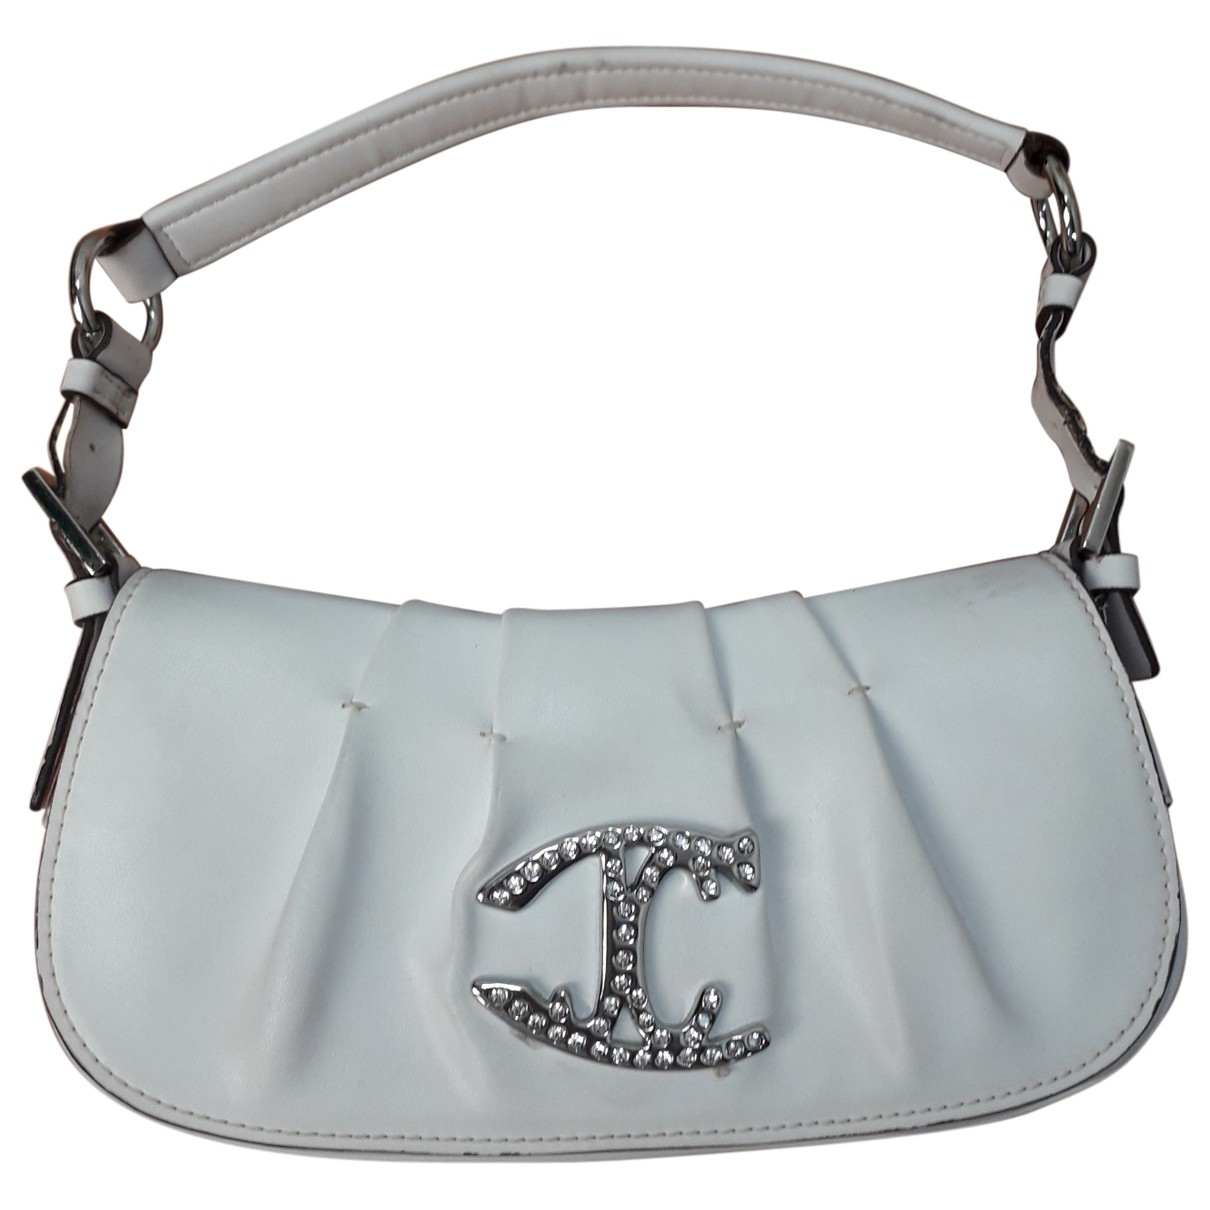 Just Cavalli \N White Leather Clutch bag for Women \N